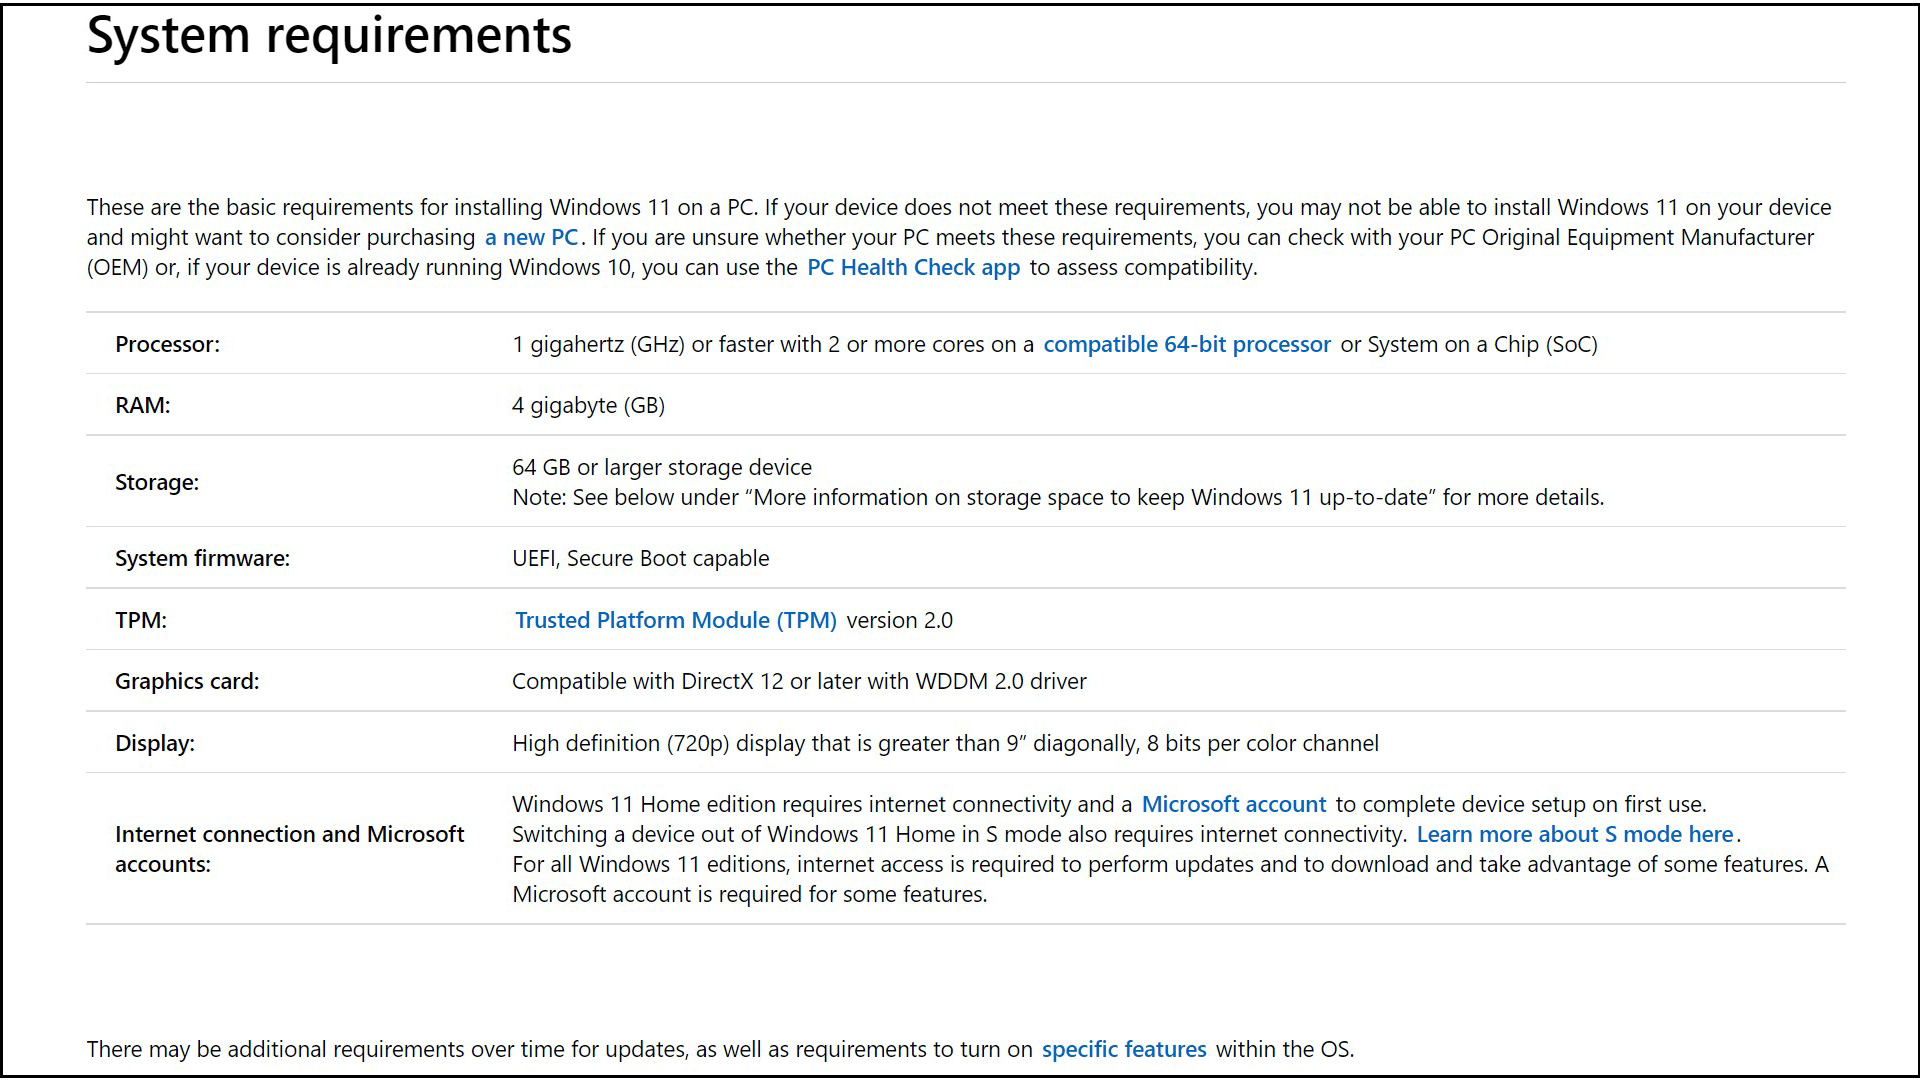 Brief overview of Windows 11 system requirements